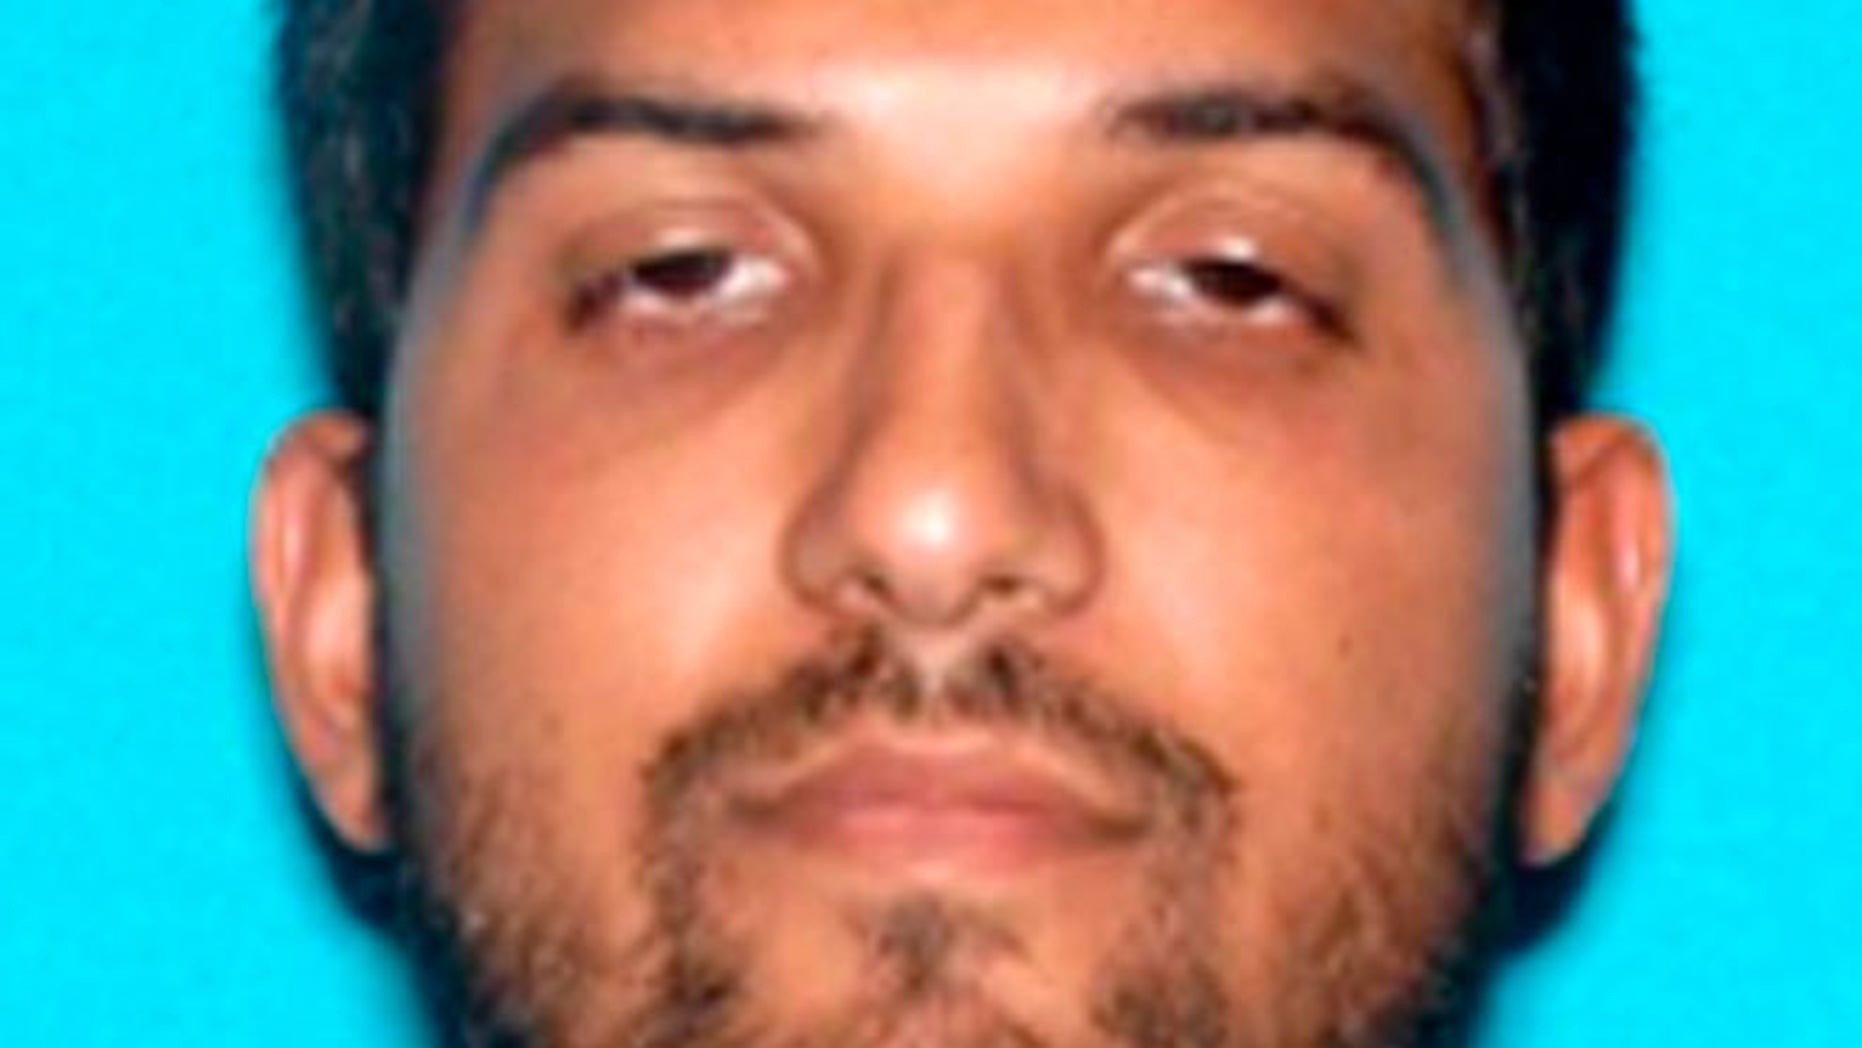 Syed Rizwan Farook is pictured in this undated handout photo provided by the FBI, December 4, 2015. U.S.-born husband, Syed Rizwan Farook